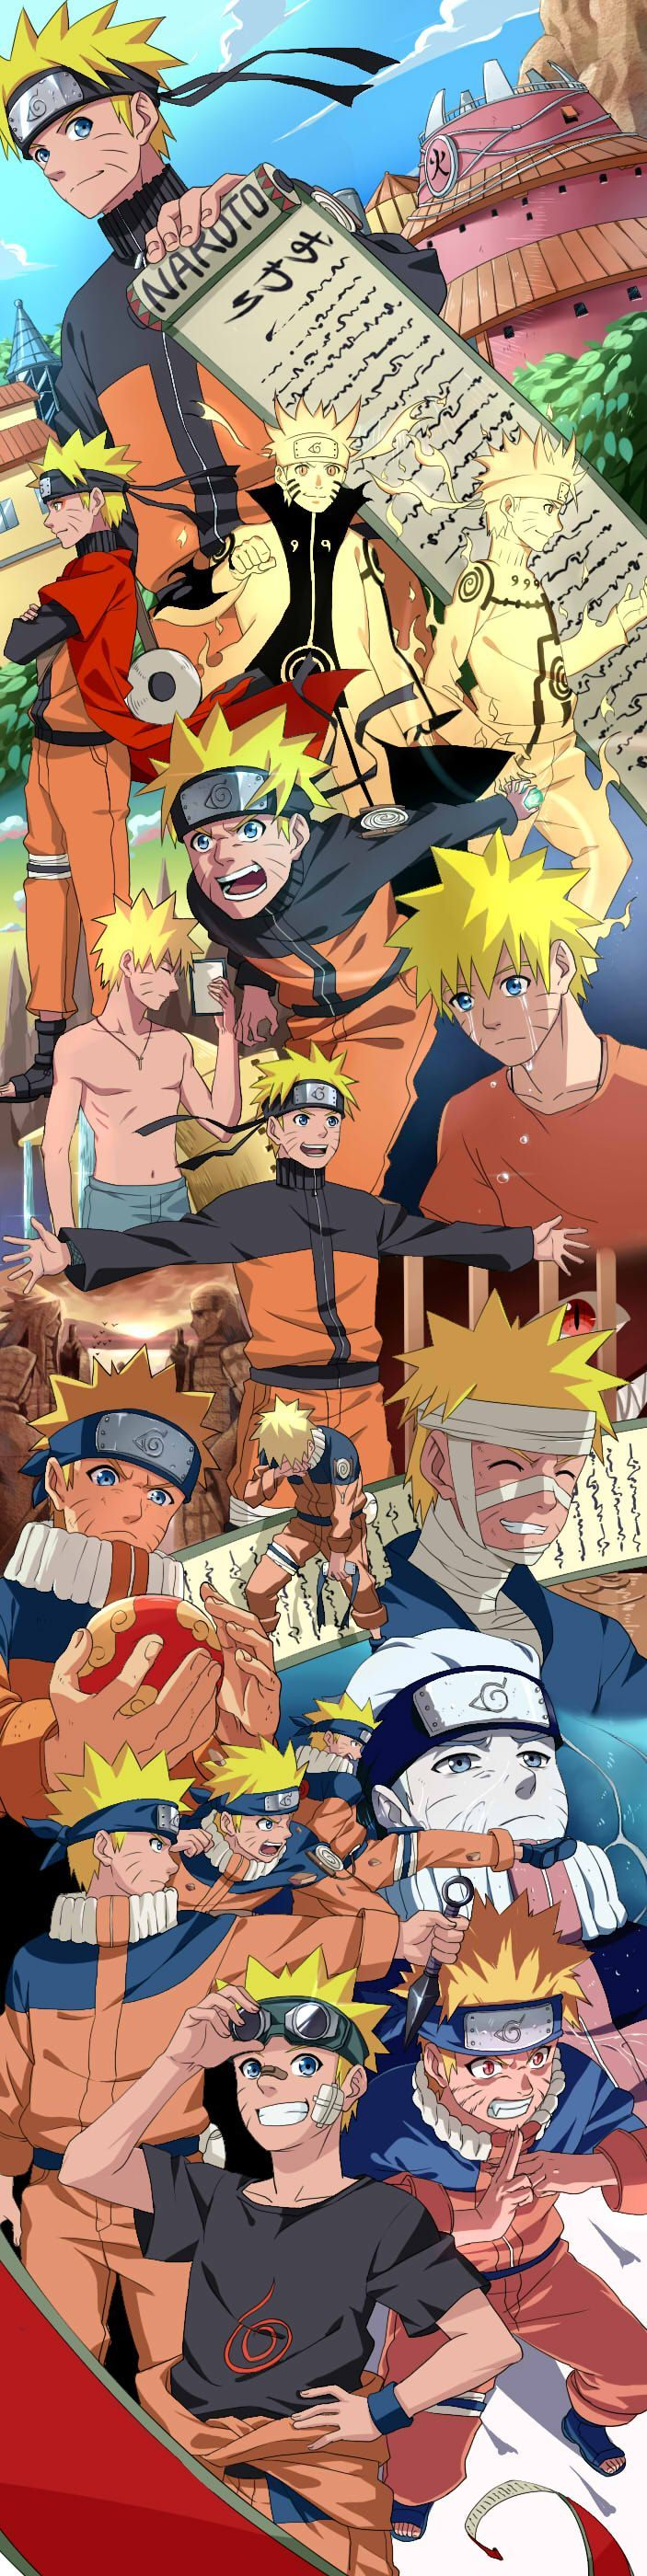 Finally found the naruto version from this artist...already pinned sasuke and sakura versions: